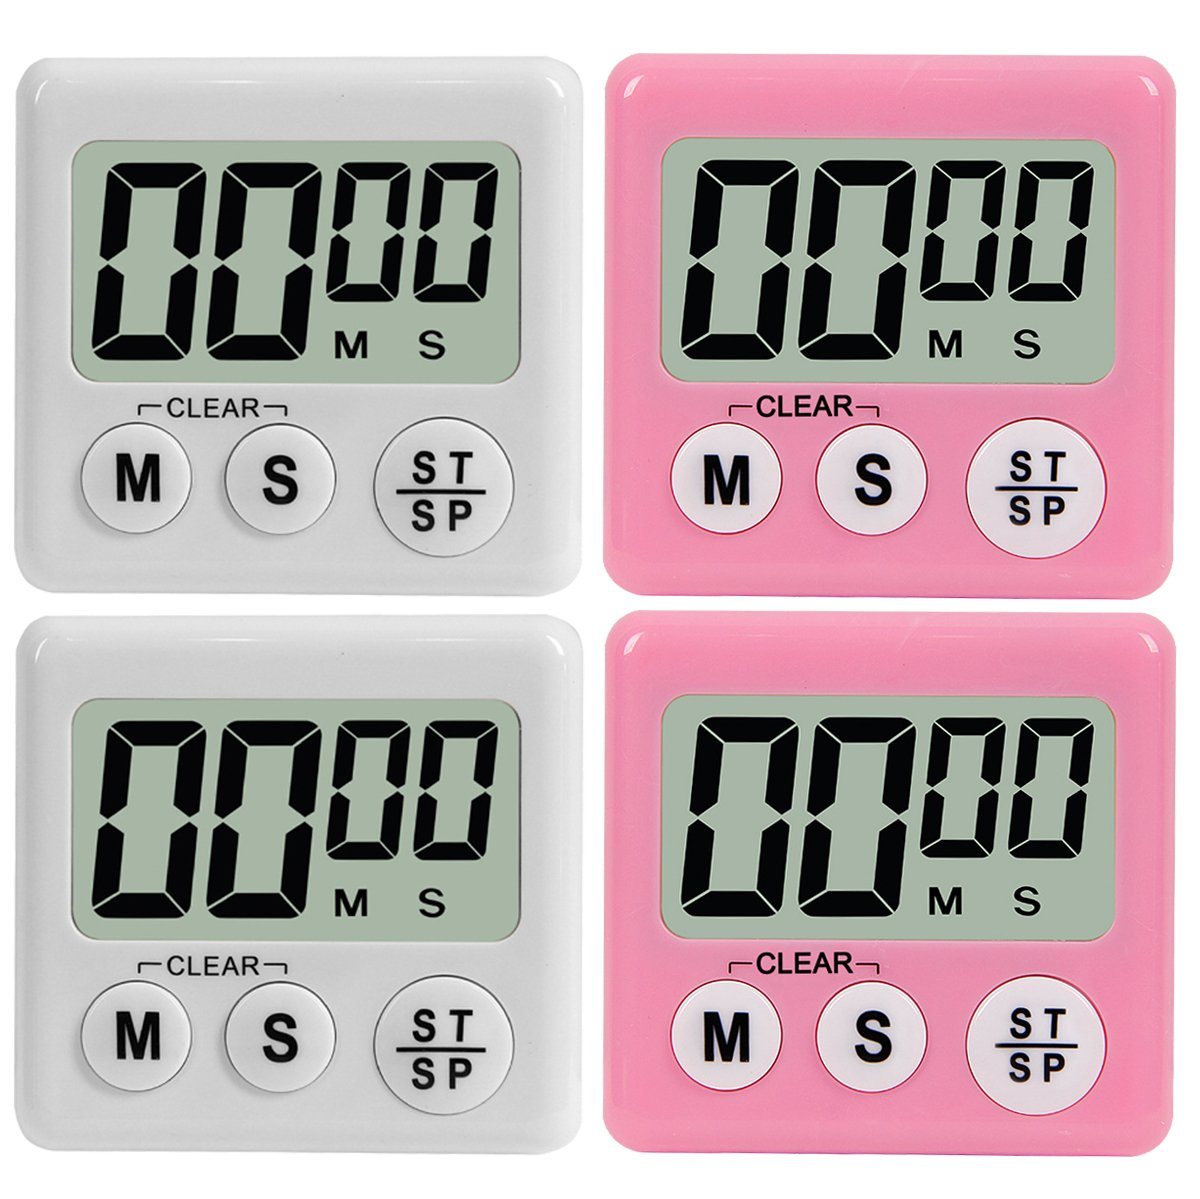 Digital Kitchen Timer UPGRADE 4 Pack Digital Electronic Big Digits Loud Alarm, Magnetic Backing with Large LCD Display for Cooking Baking Sports Games Office (2 White & 2 Pink)